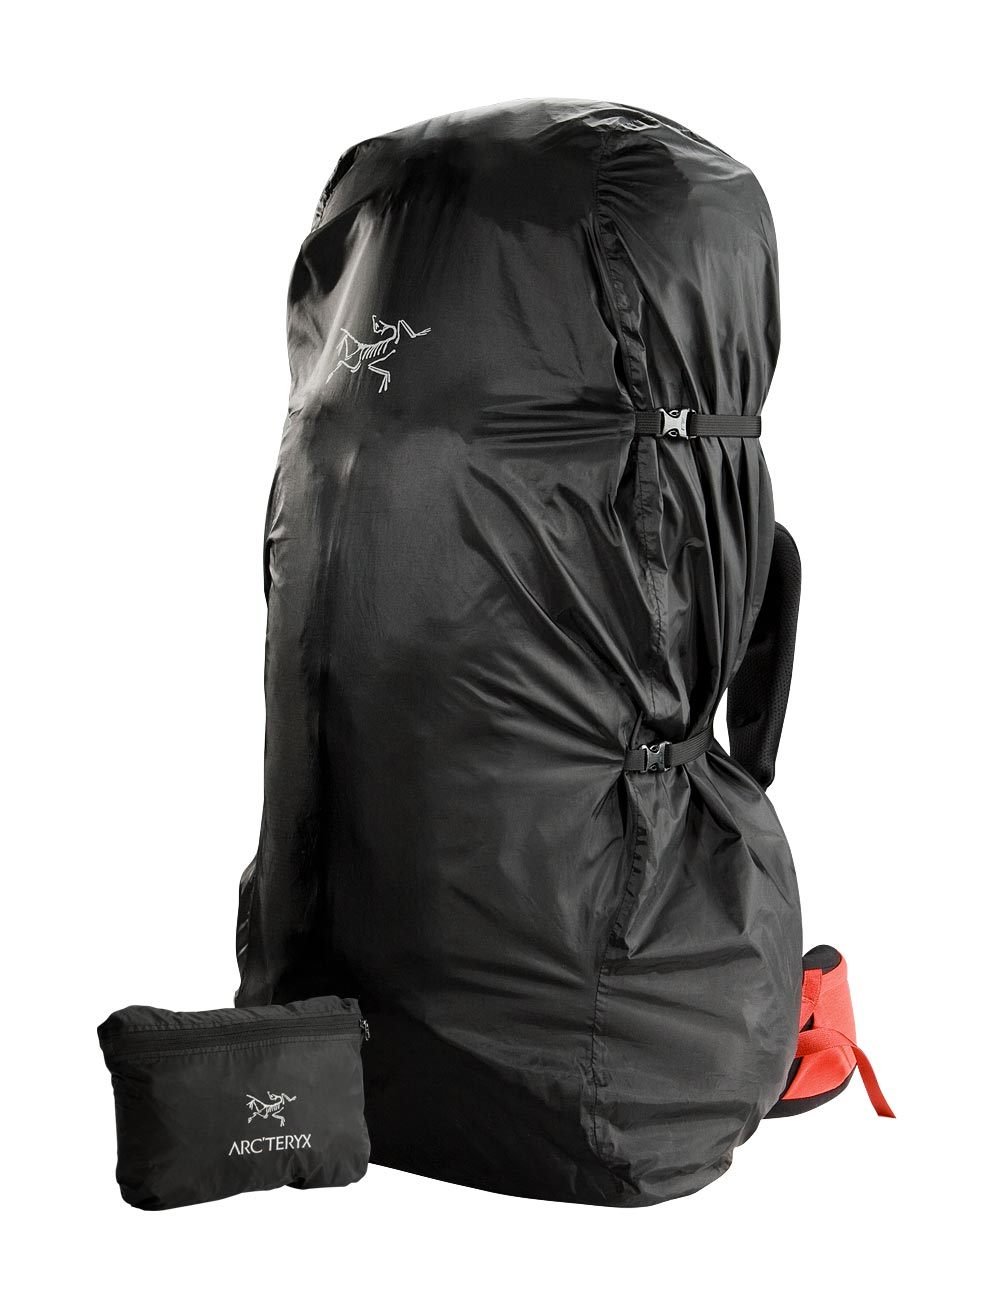 Arcteryx Black Pack Shelter L